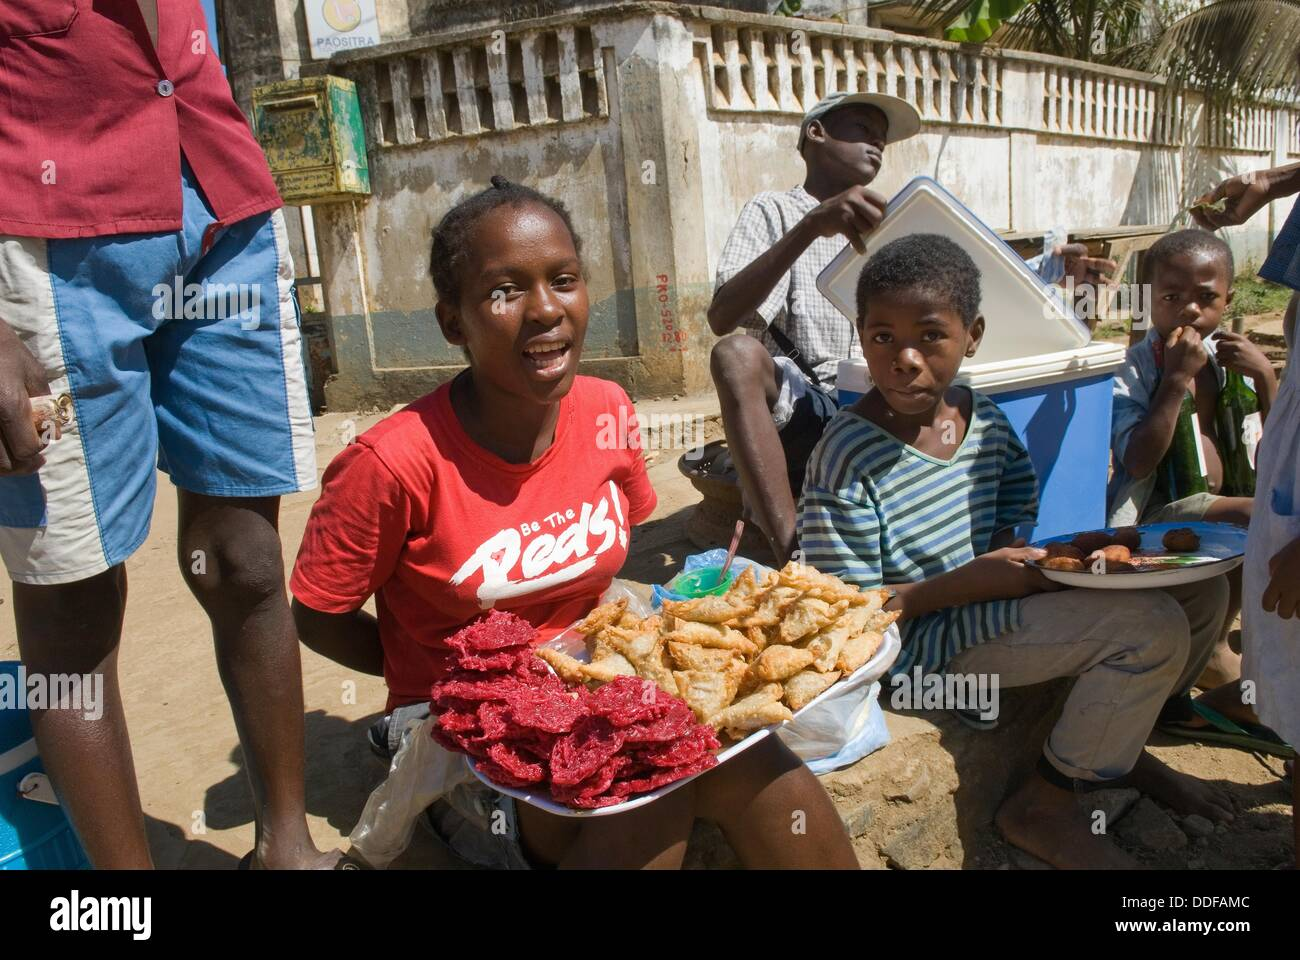 young street seller in Hell-Ville Andoany, Nosy Be island, Republic of Madagascar, Indian Ocean - Stock Image